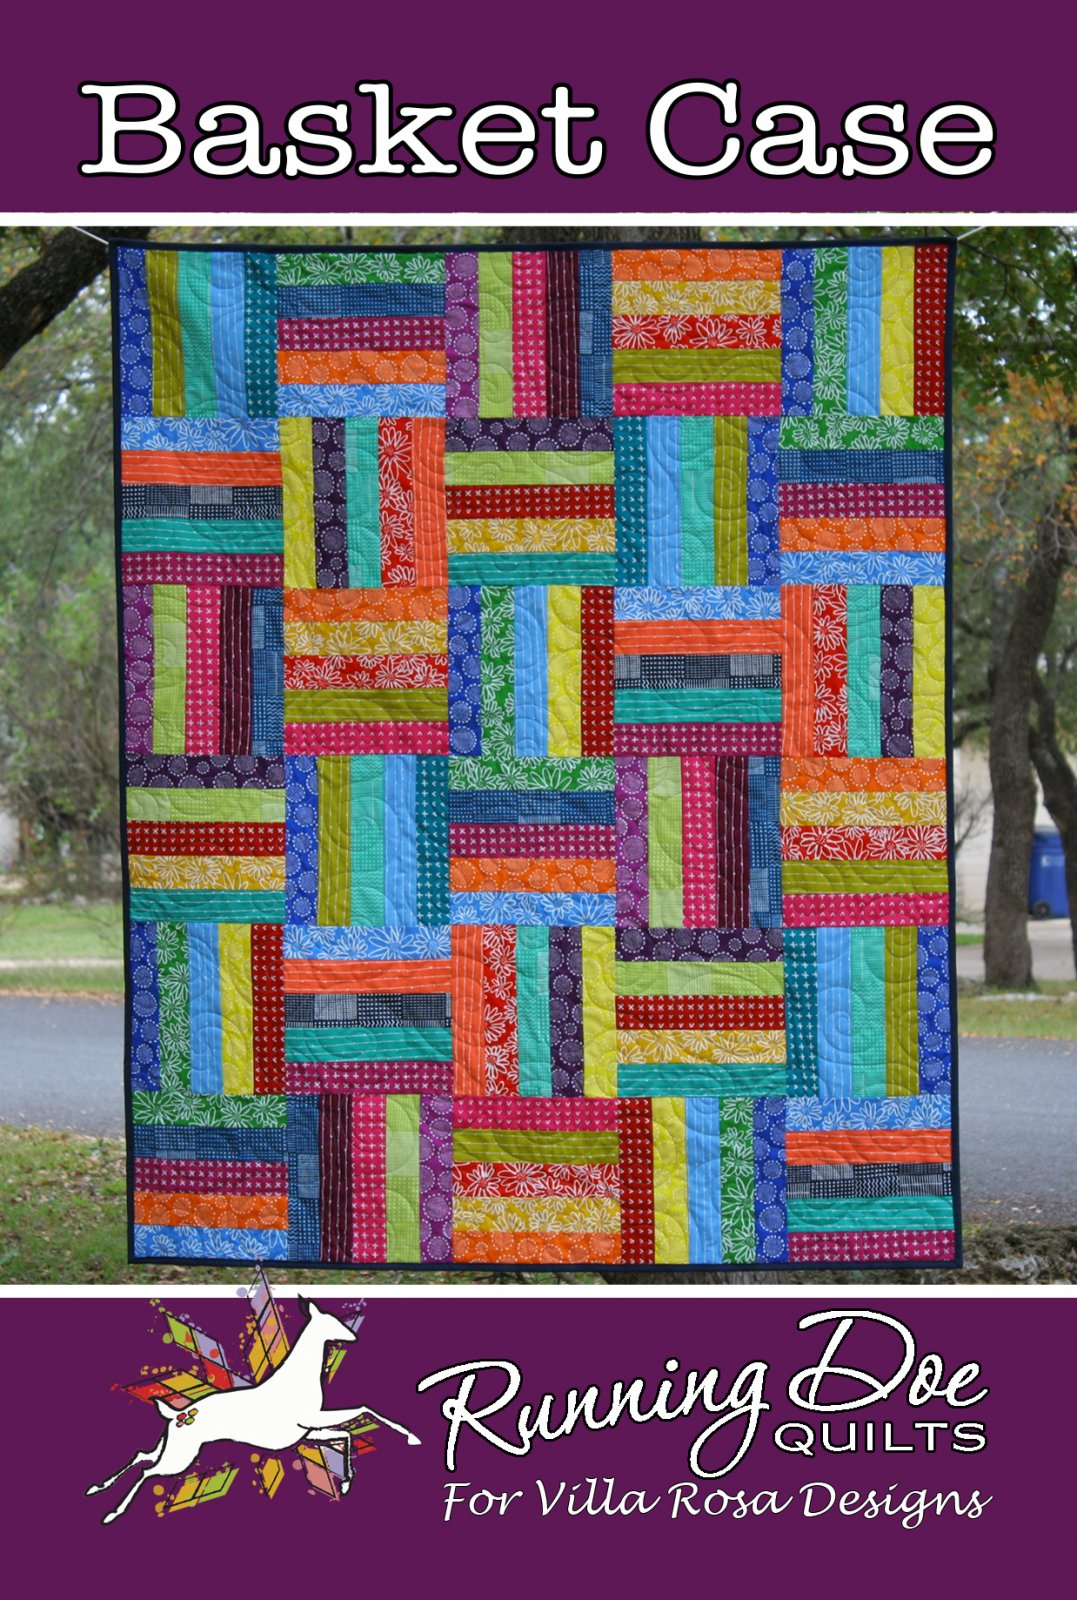 Basket Case Card Quilt Pattern by Running Doe Quilts for Villa Rosa Designs